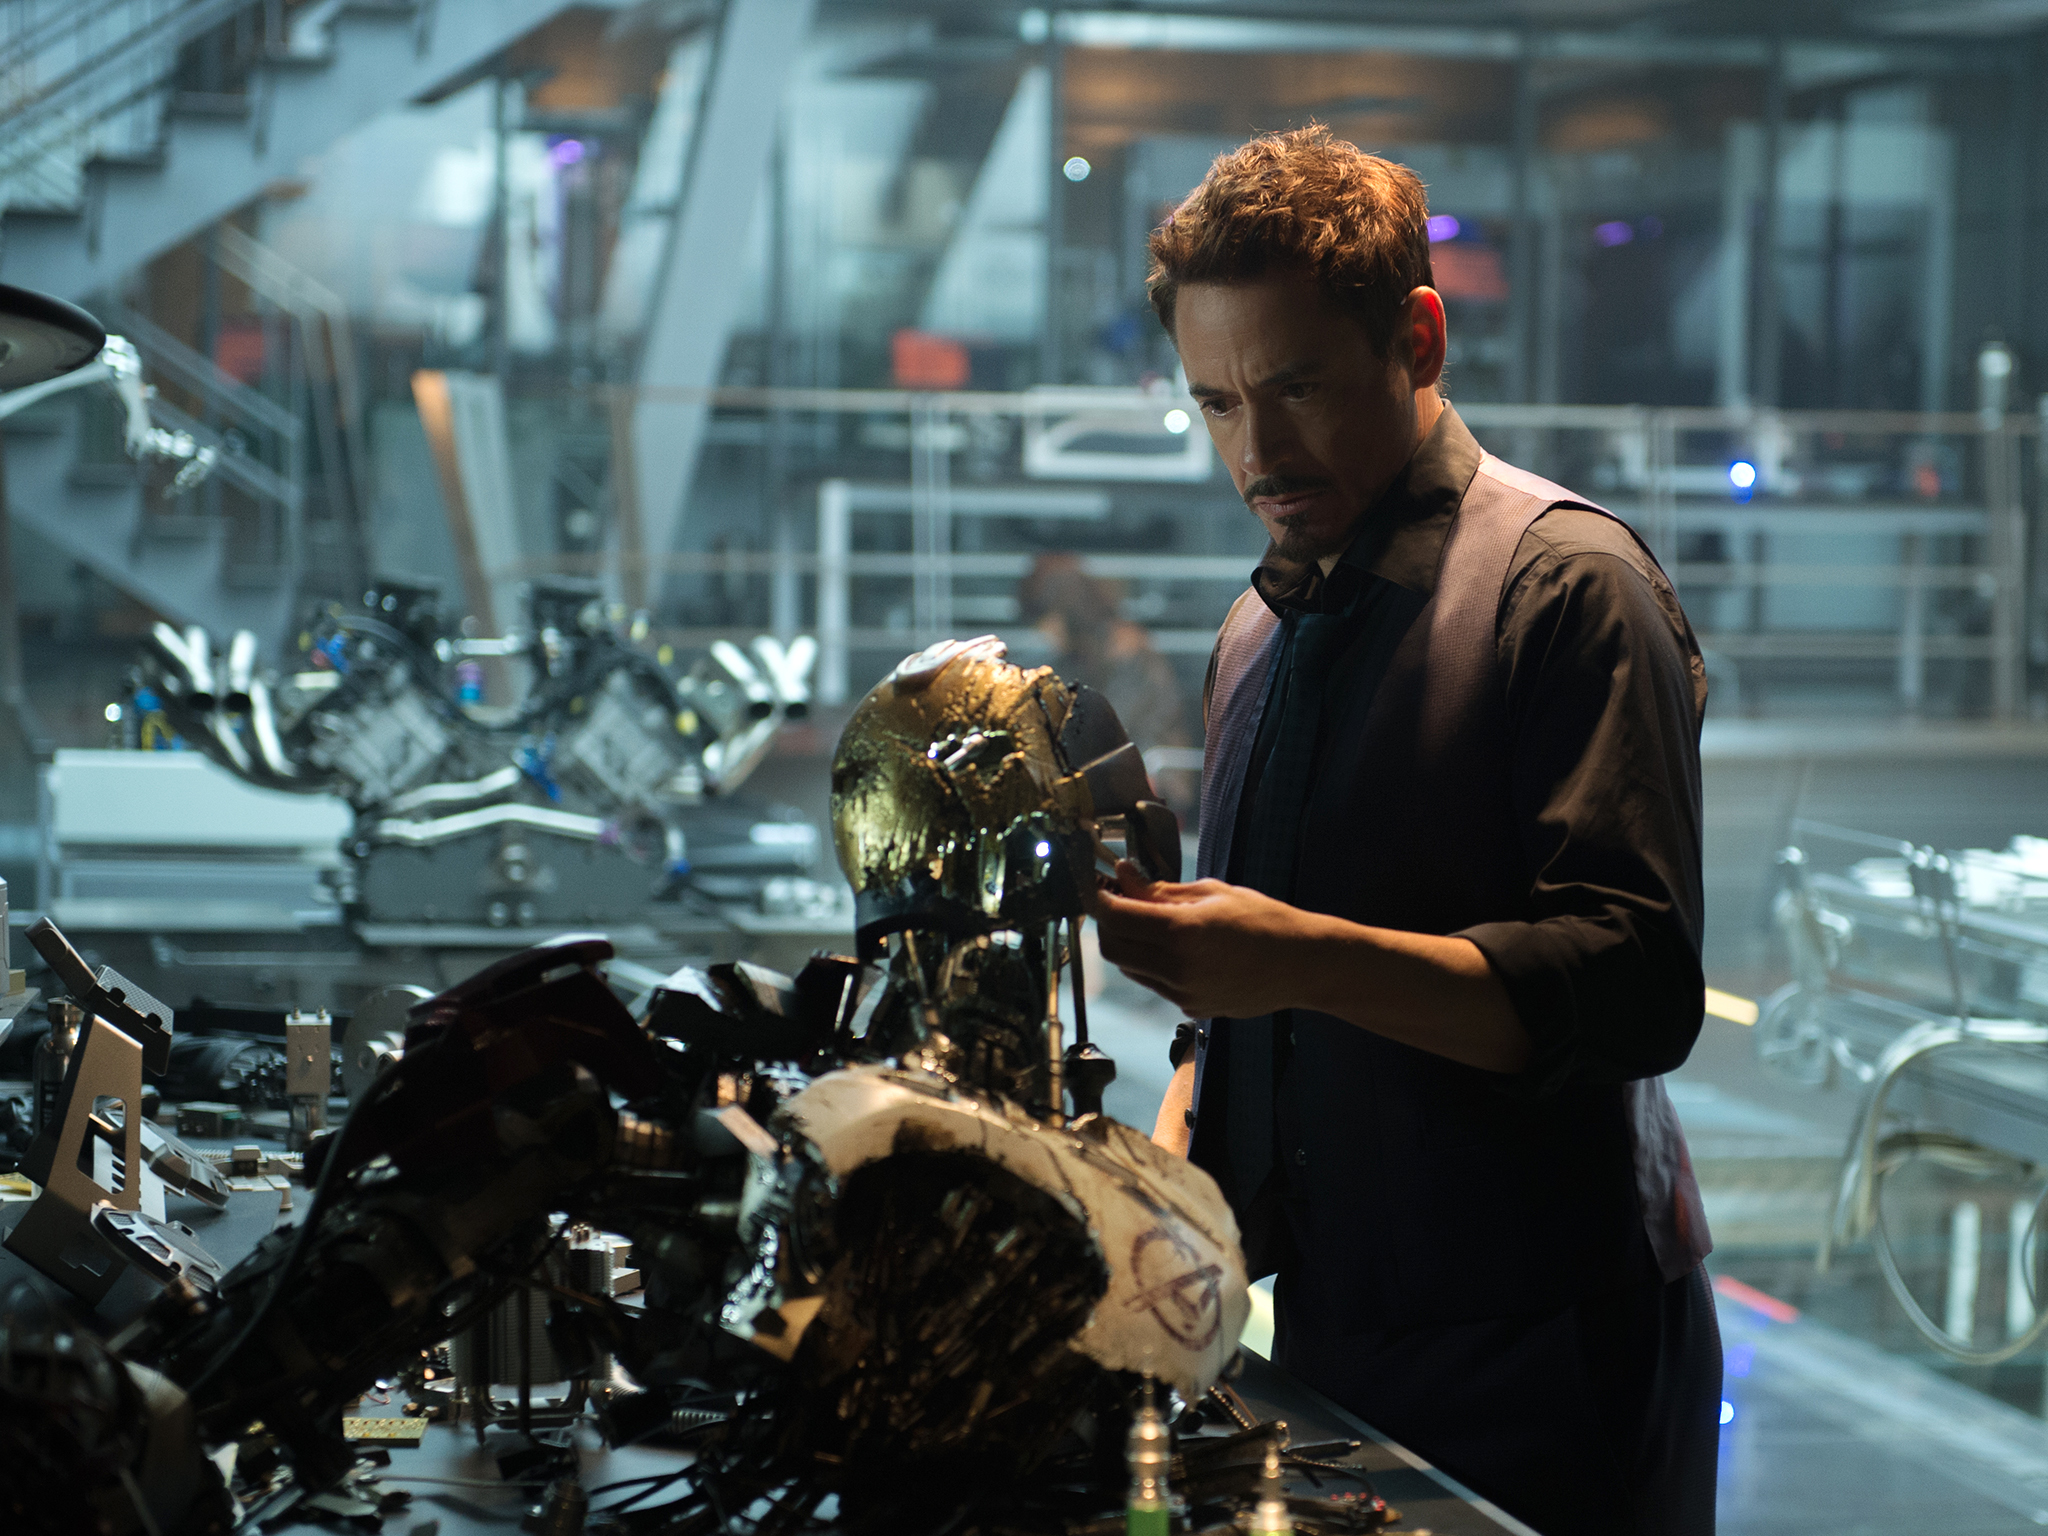 Robert Downey Jr in 'Avengers: Age of Ultron'